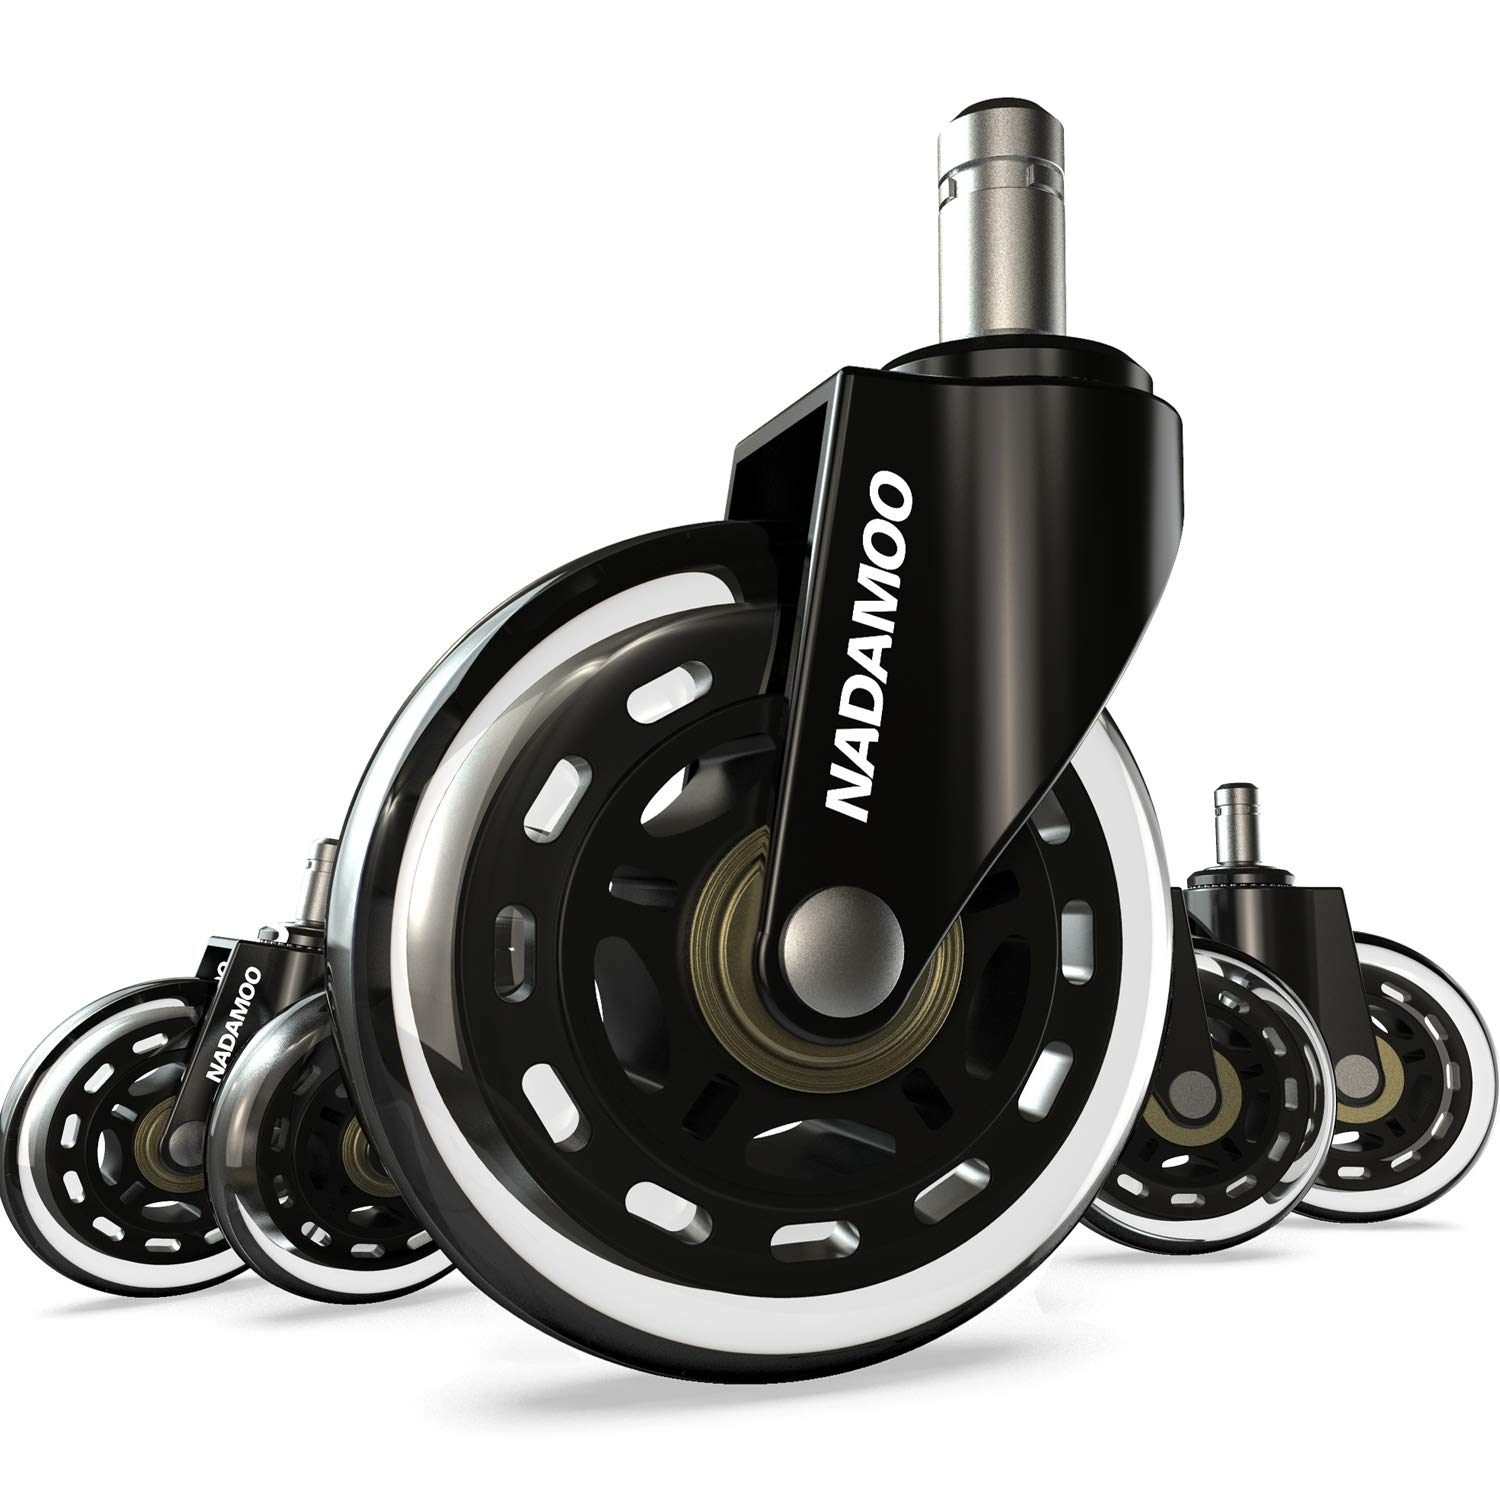 NADAMOO Office Chair Caster Wheels Replacement (Set of 5), Roller Blade Style with 11mm Standard Stem Size, Heavy Duty Smooth & Silent Desk Chair Casters